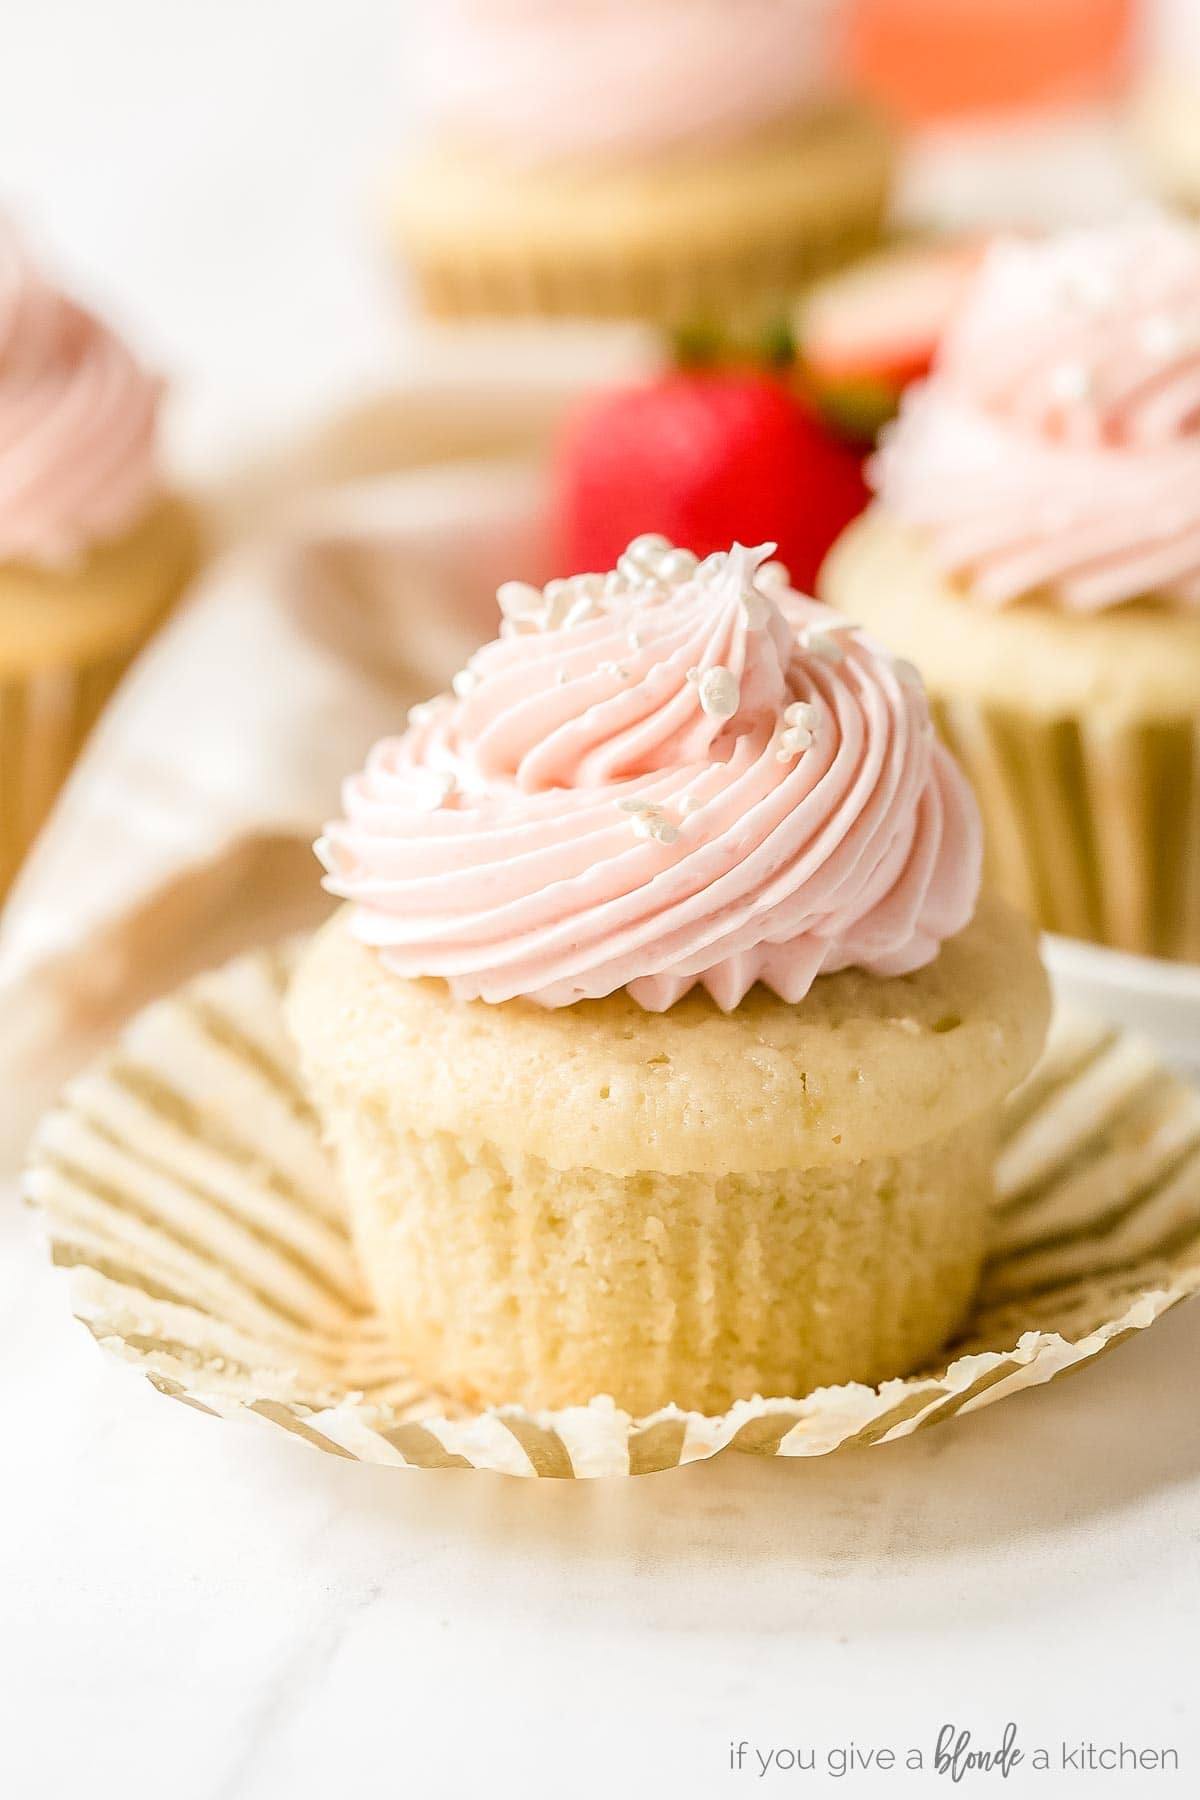 strawberry moscato cupcakes recipe with bite taken out of cupcake sitting on cupcake liner with strawberries